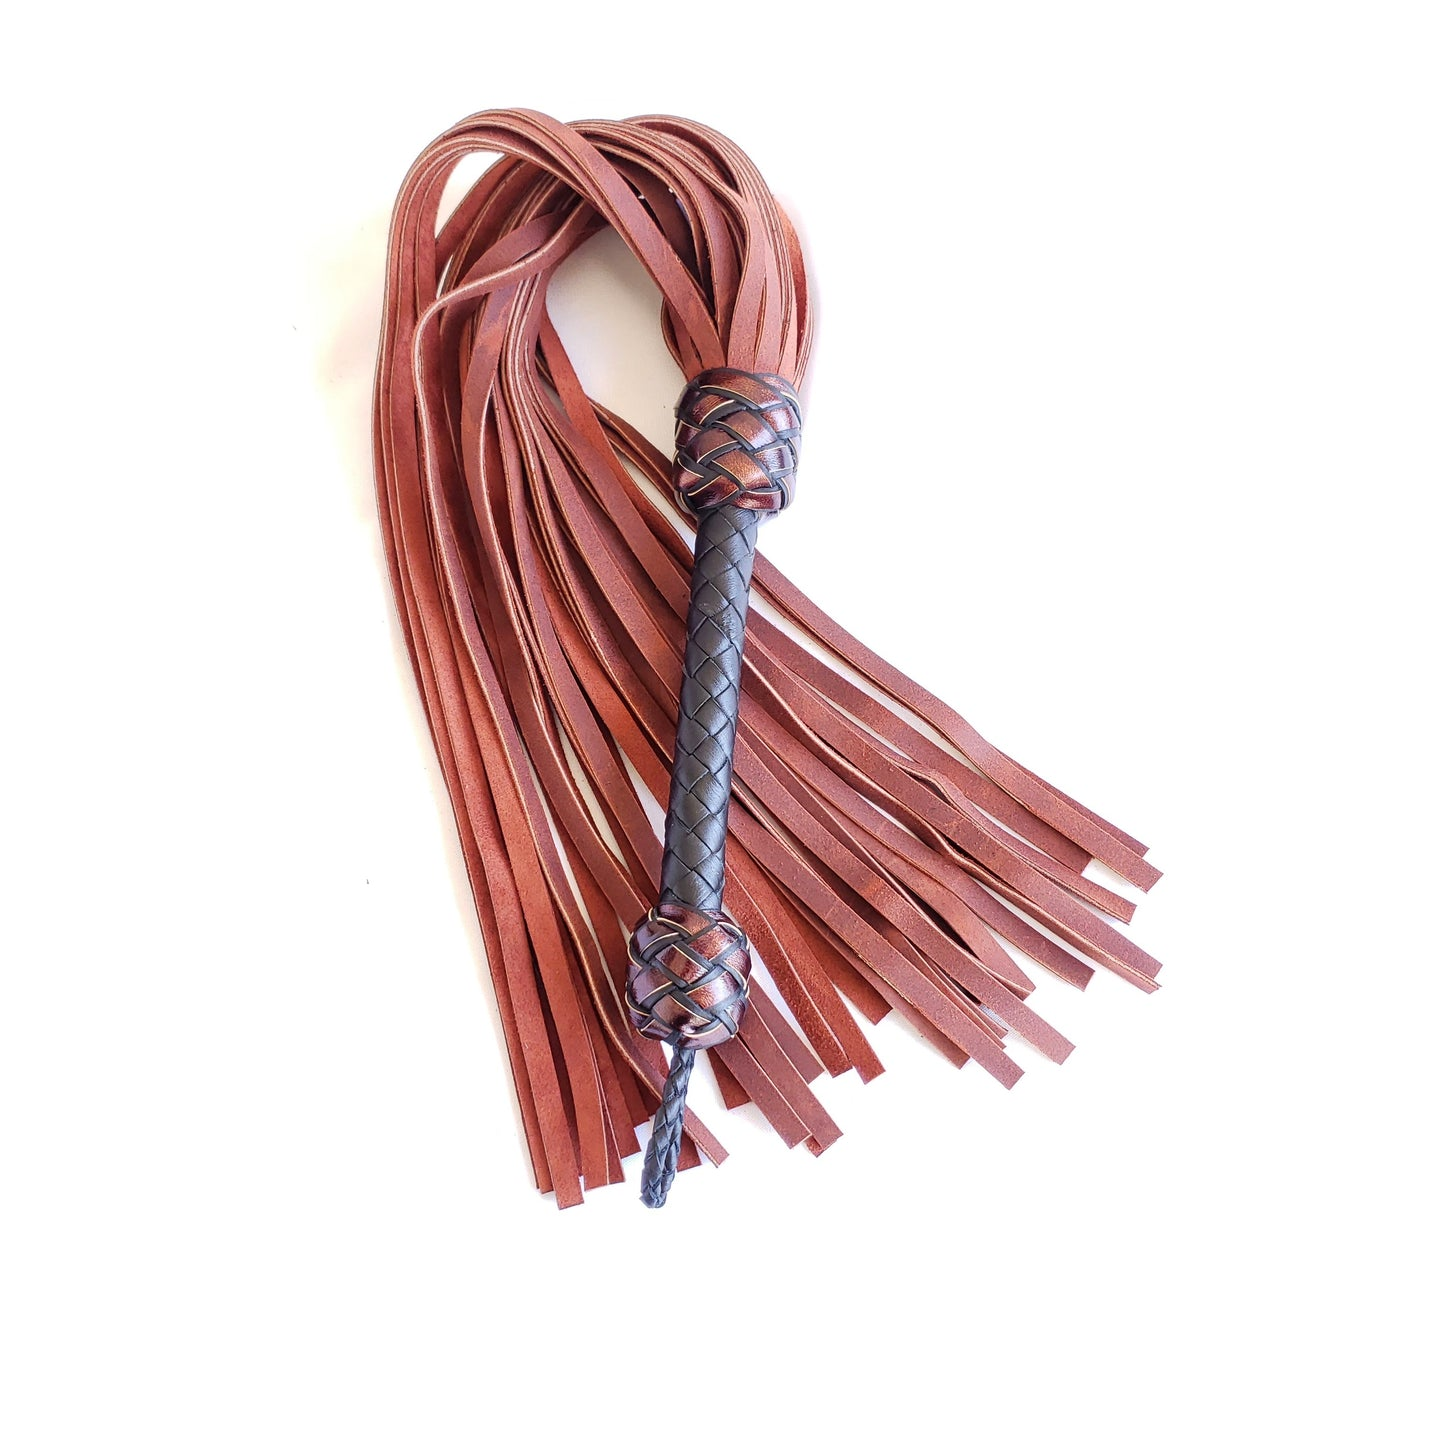 Oil Tan Heavy Leather Flogger